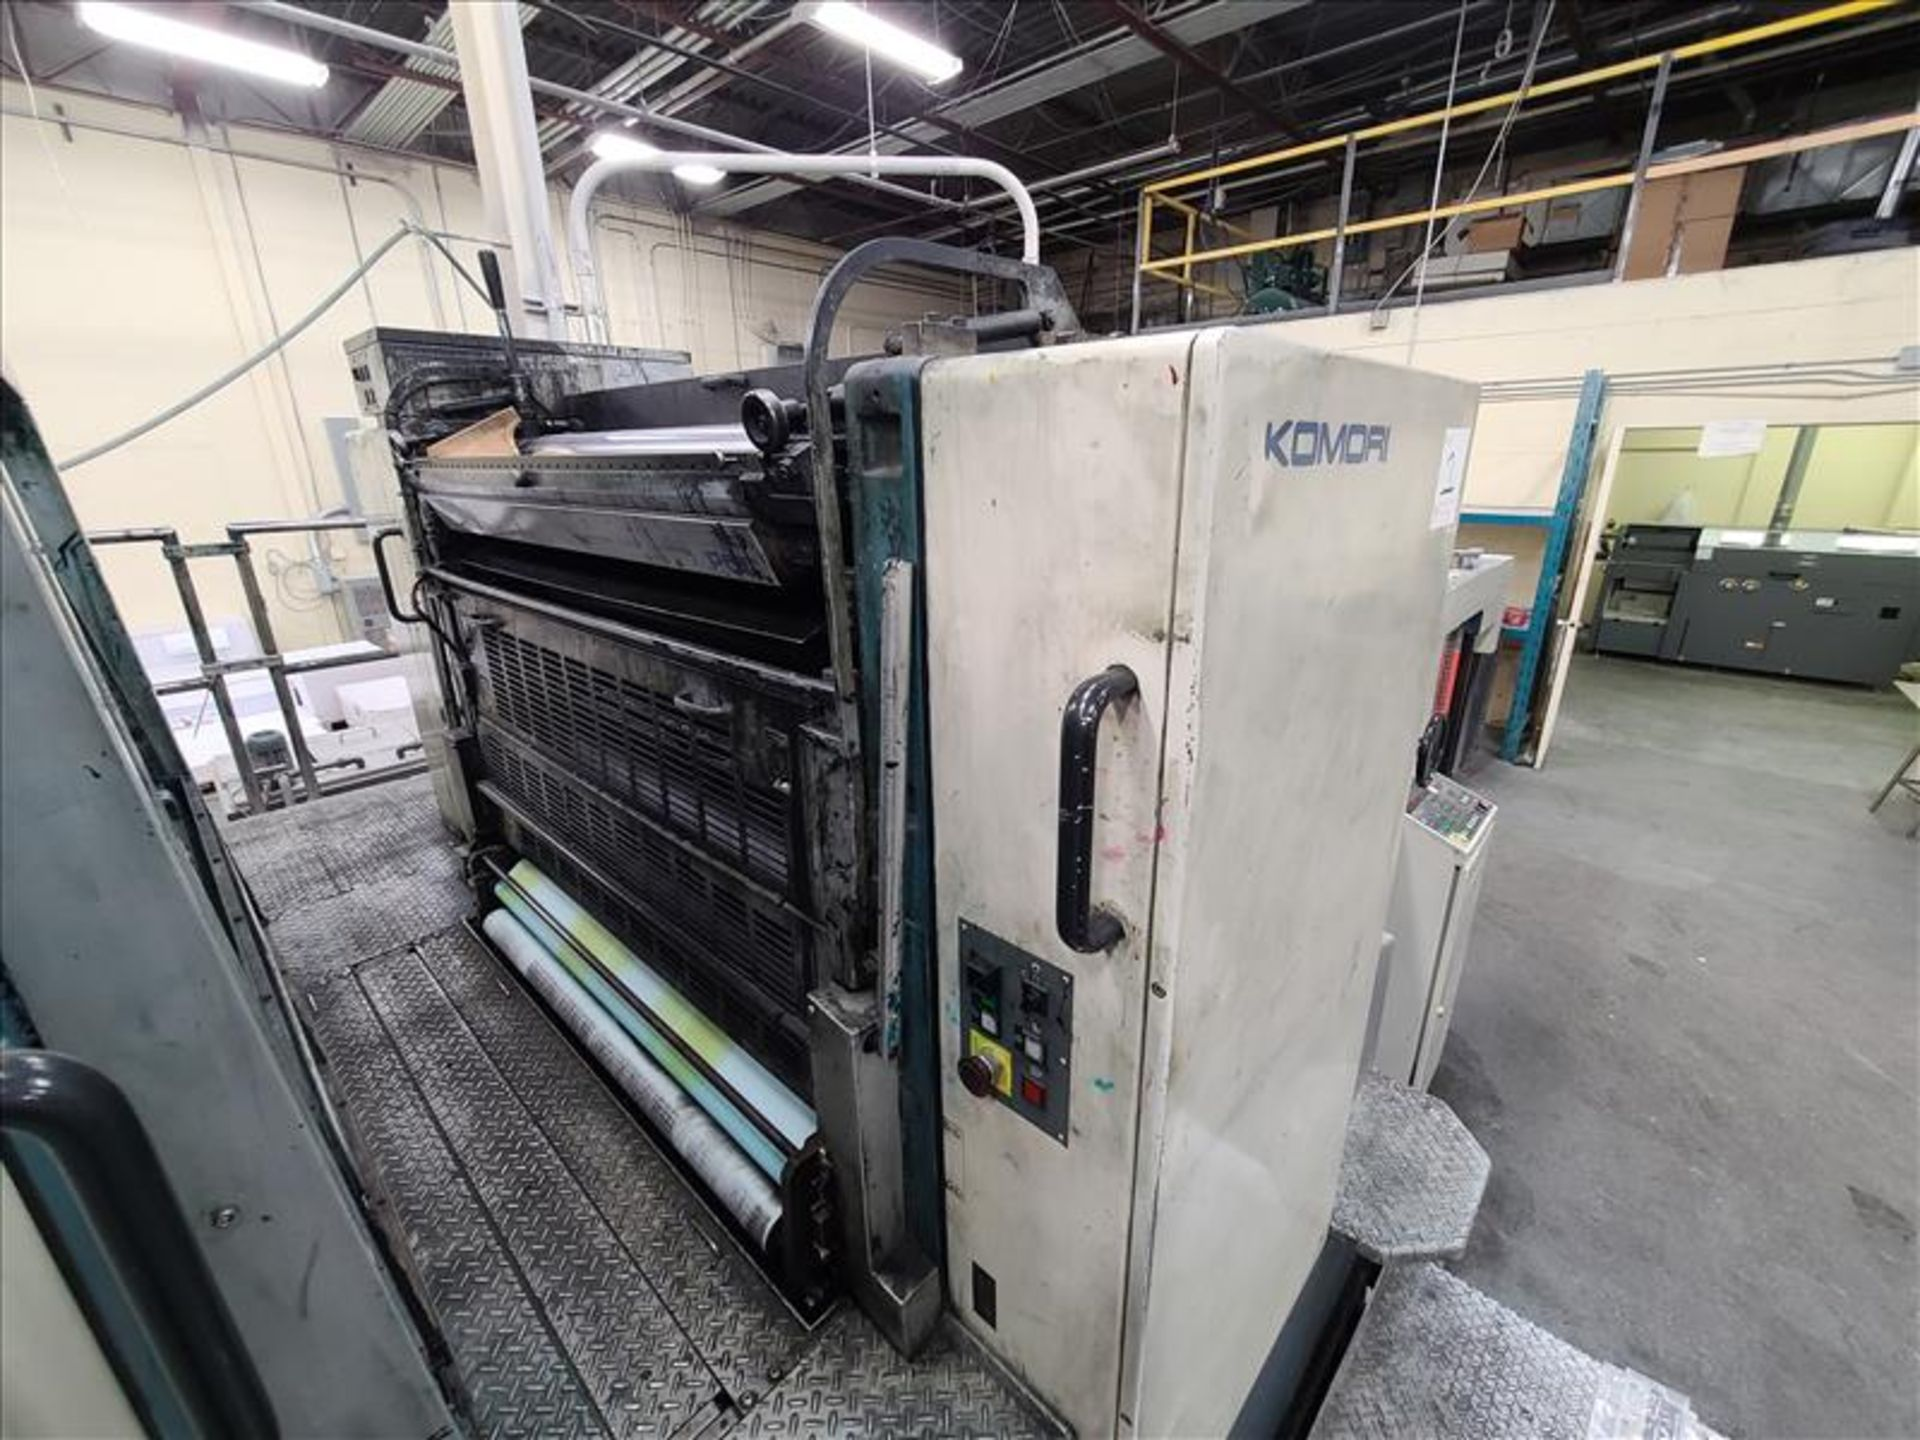 Komori 4-color offset printing press, Series Lithrone 40, model L-440, S/N.2202 approx. 68 - Image 6 of 22